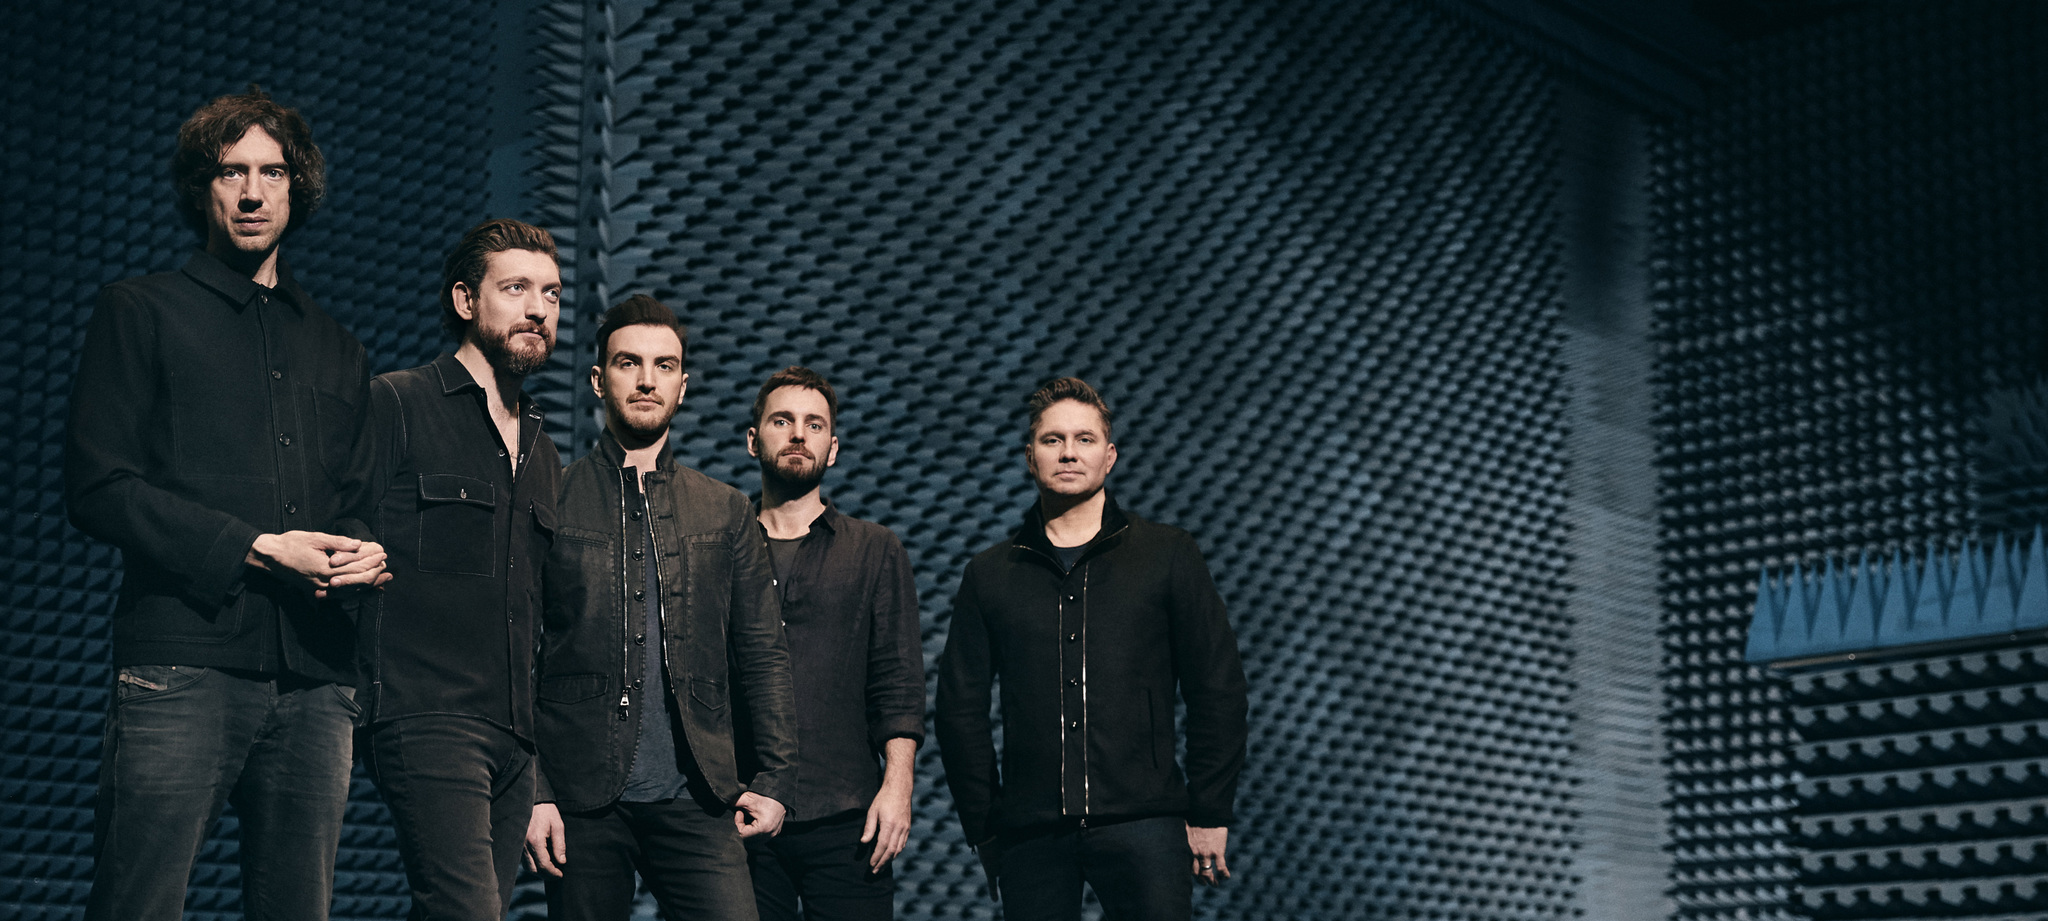 SNOW PATROL announce headline show at Sounds Of The City, Castlefield Bowl, Manchester for Sunday 26th September 2021